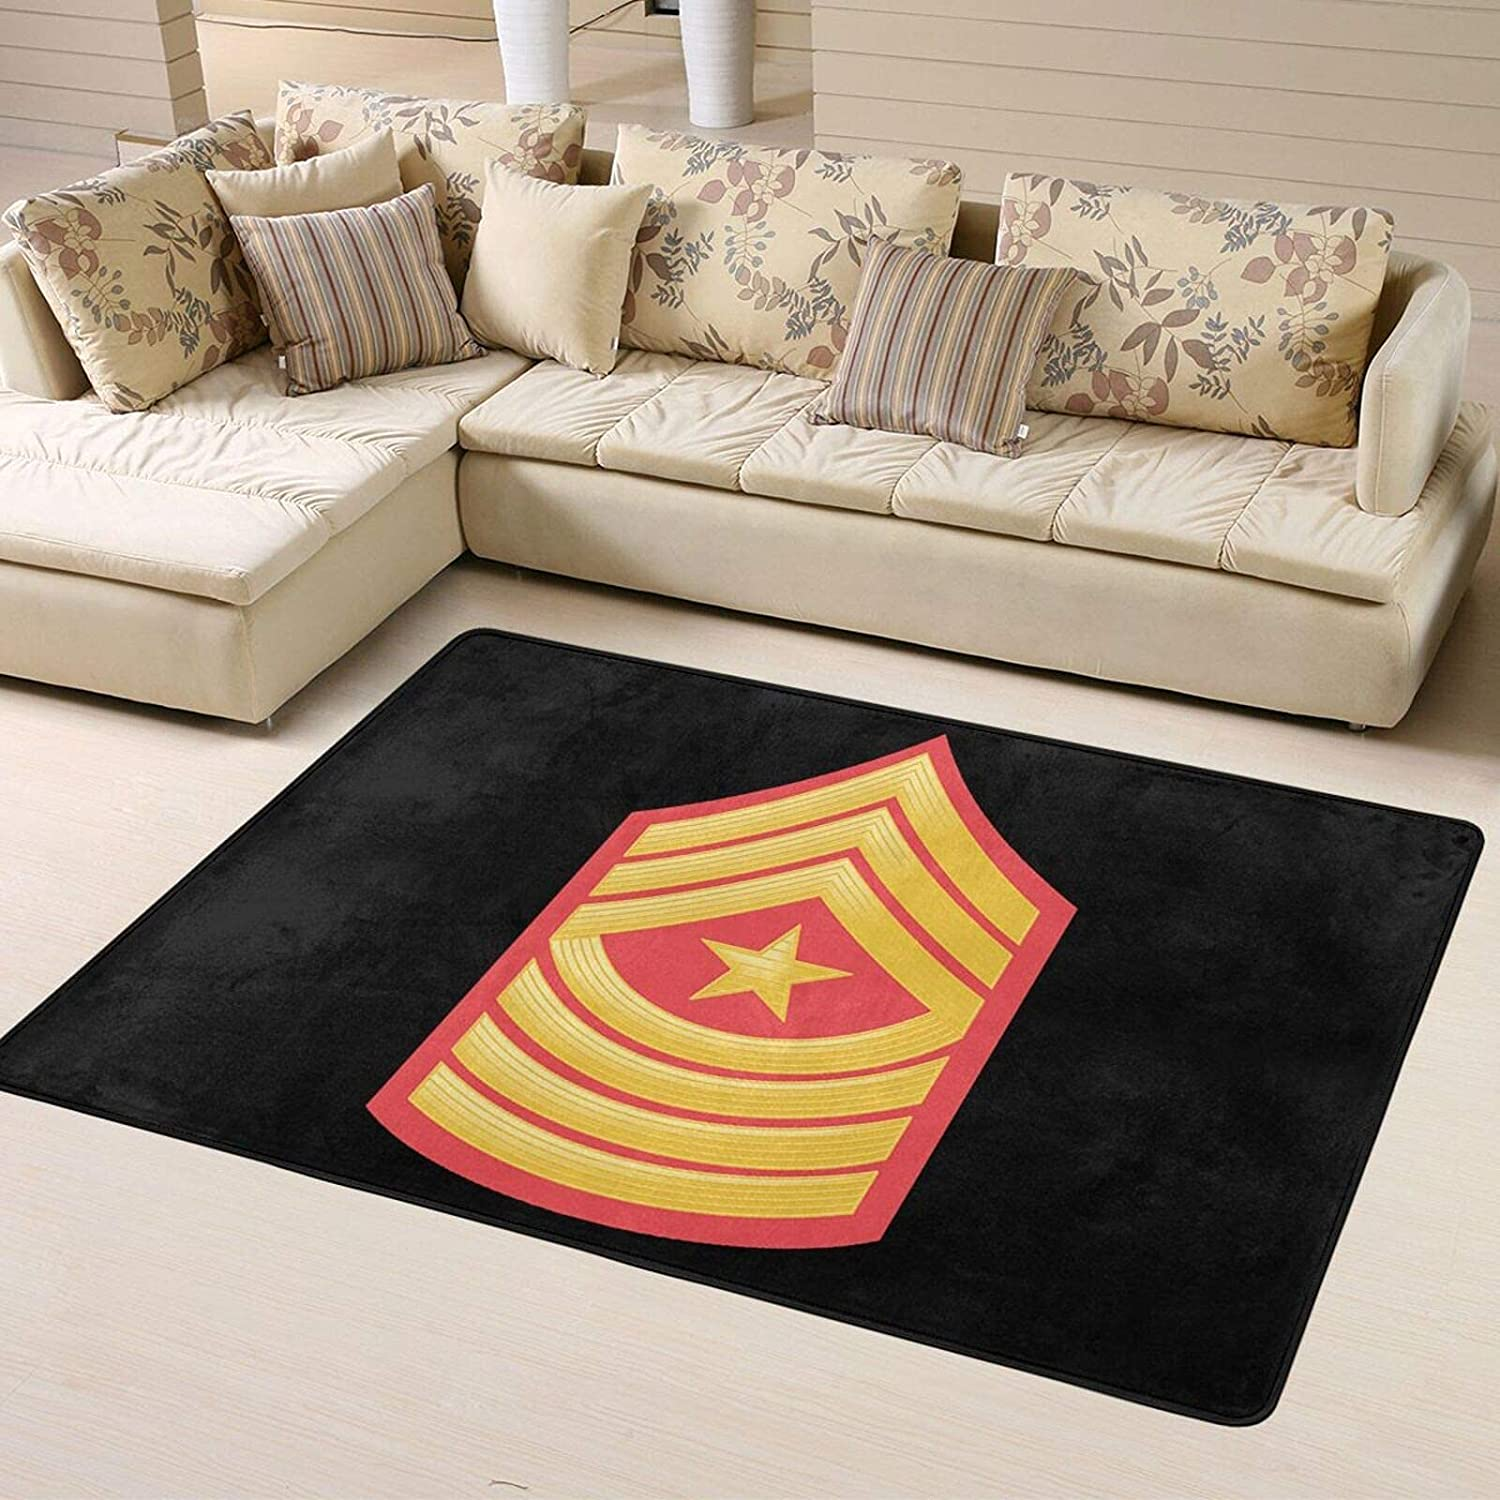 E-9 Sergeant Major Red Ranking TOP12 Gold Personalized Soft Home Chevron Super 100% quality warranty!